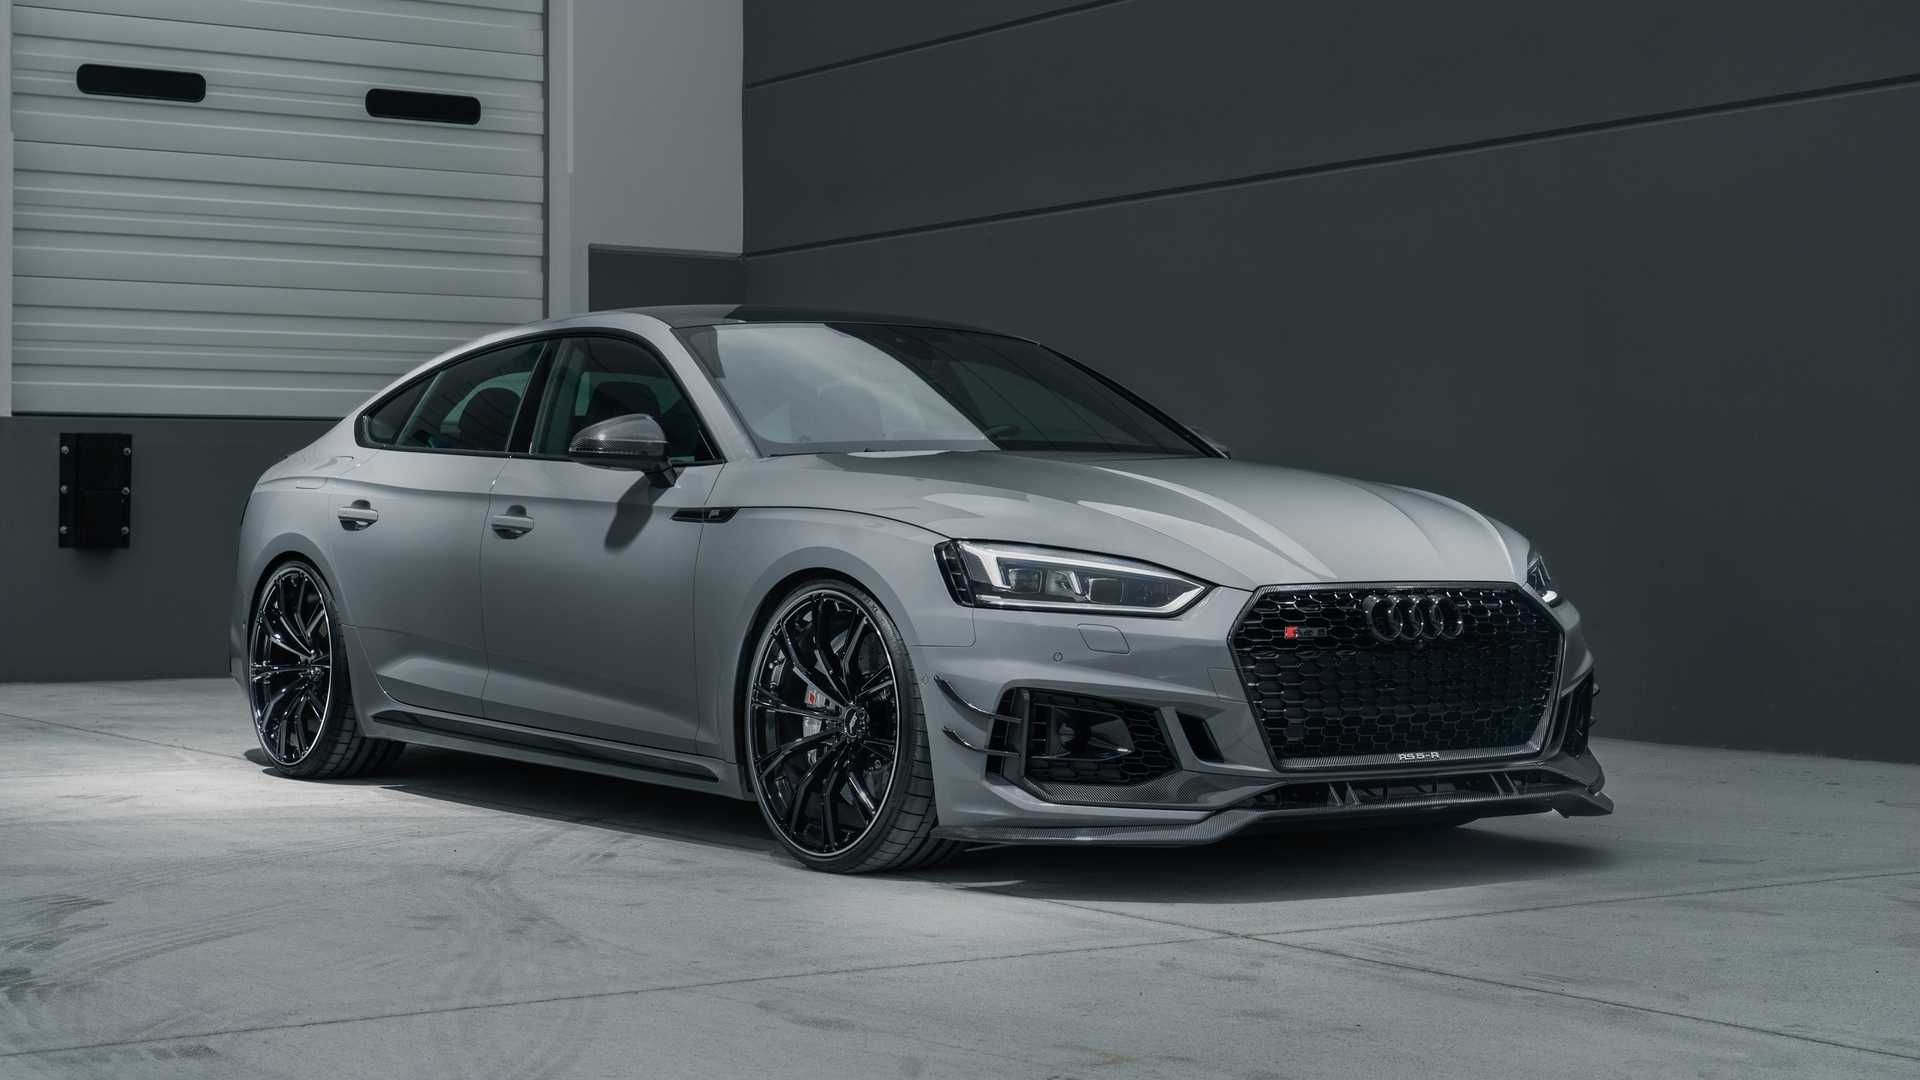 Abt Shows Off Their New Rs5 R Based On Audi Rs5 Sportback Audi Rs5 Sportback Audi Rs5 Audi Rs